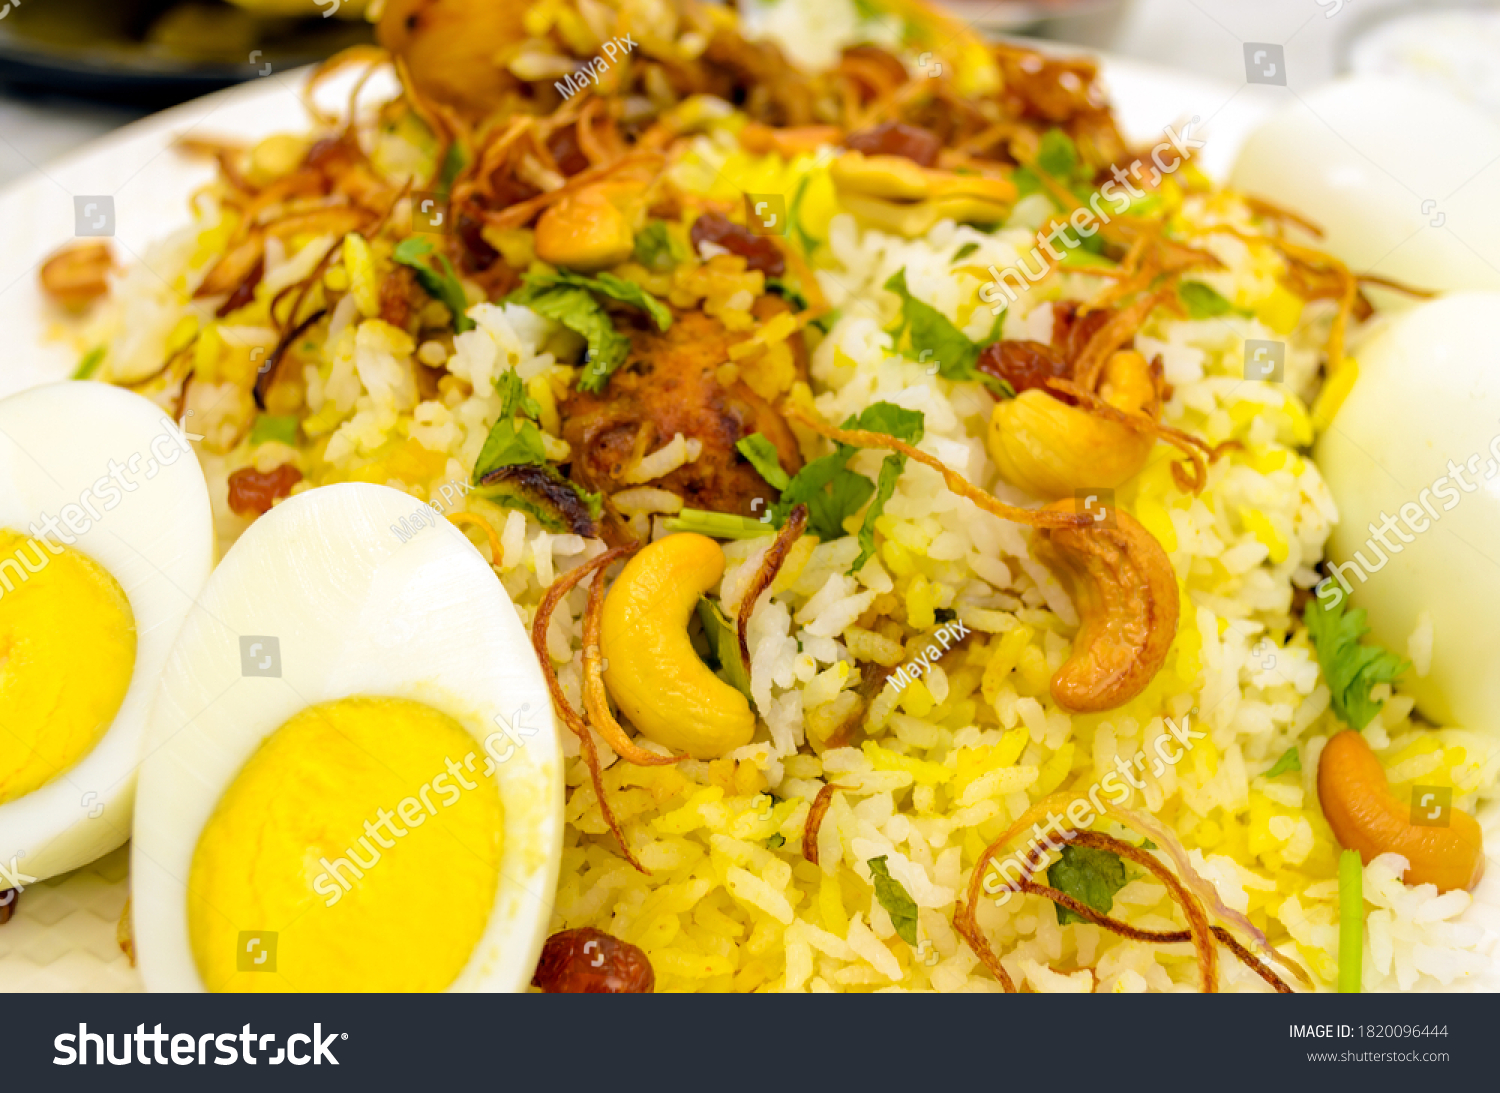 Closeup of chicken biryani plate with cut eggs in the foreground with fried onions and cashew nuts spread on